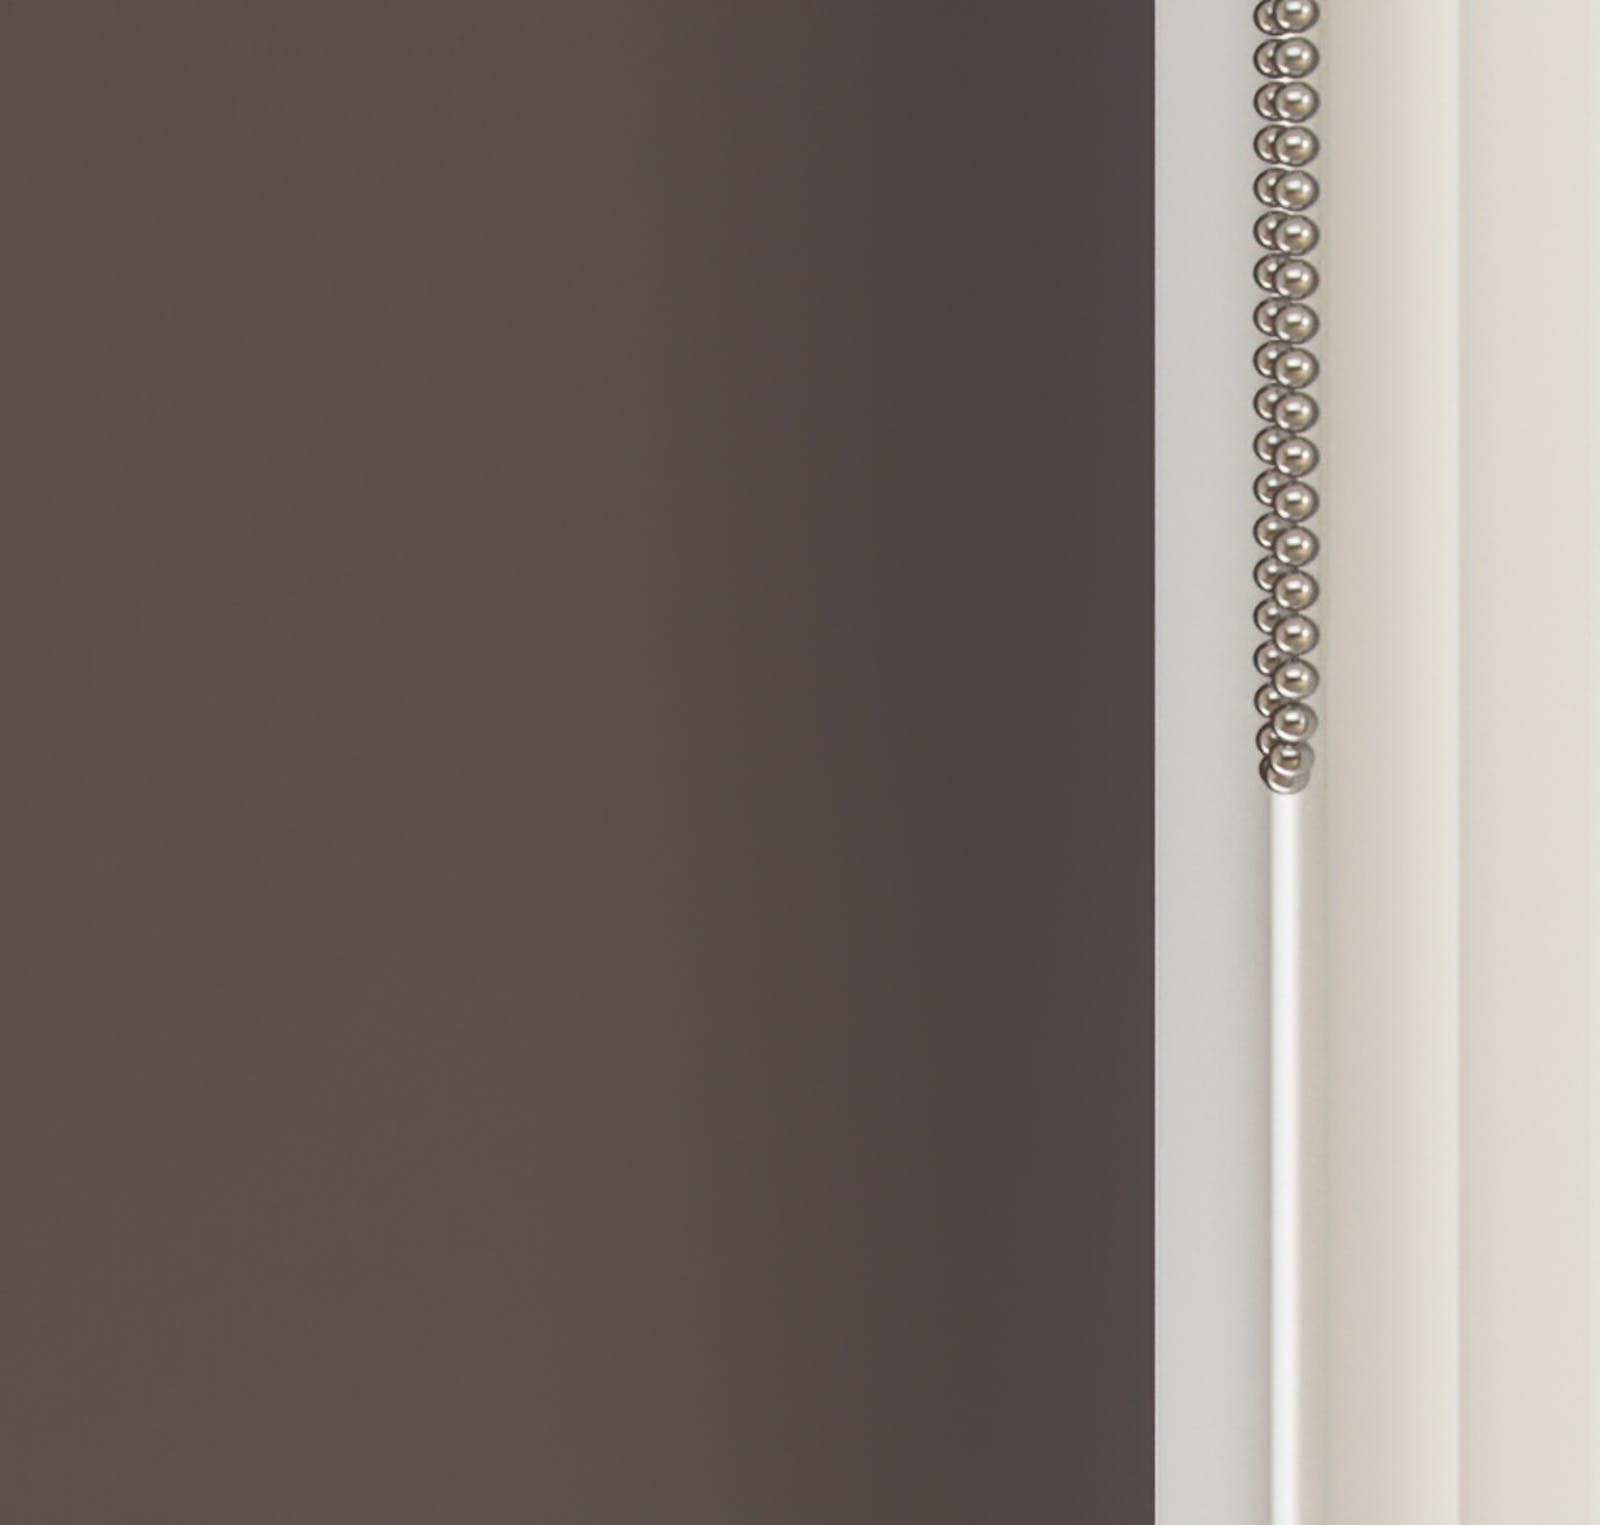 Close up view of Lick Brown 01 roller blinds